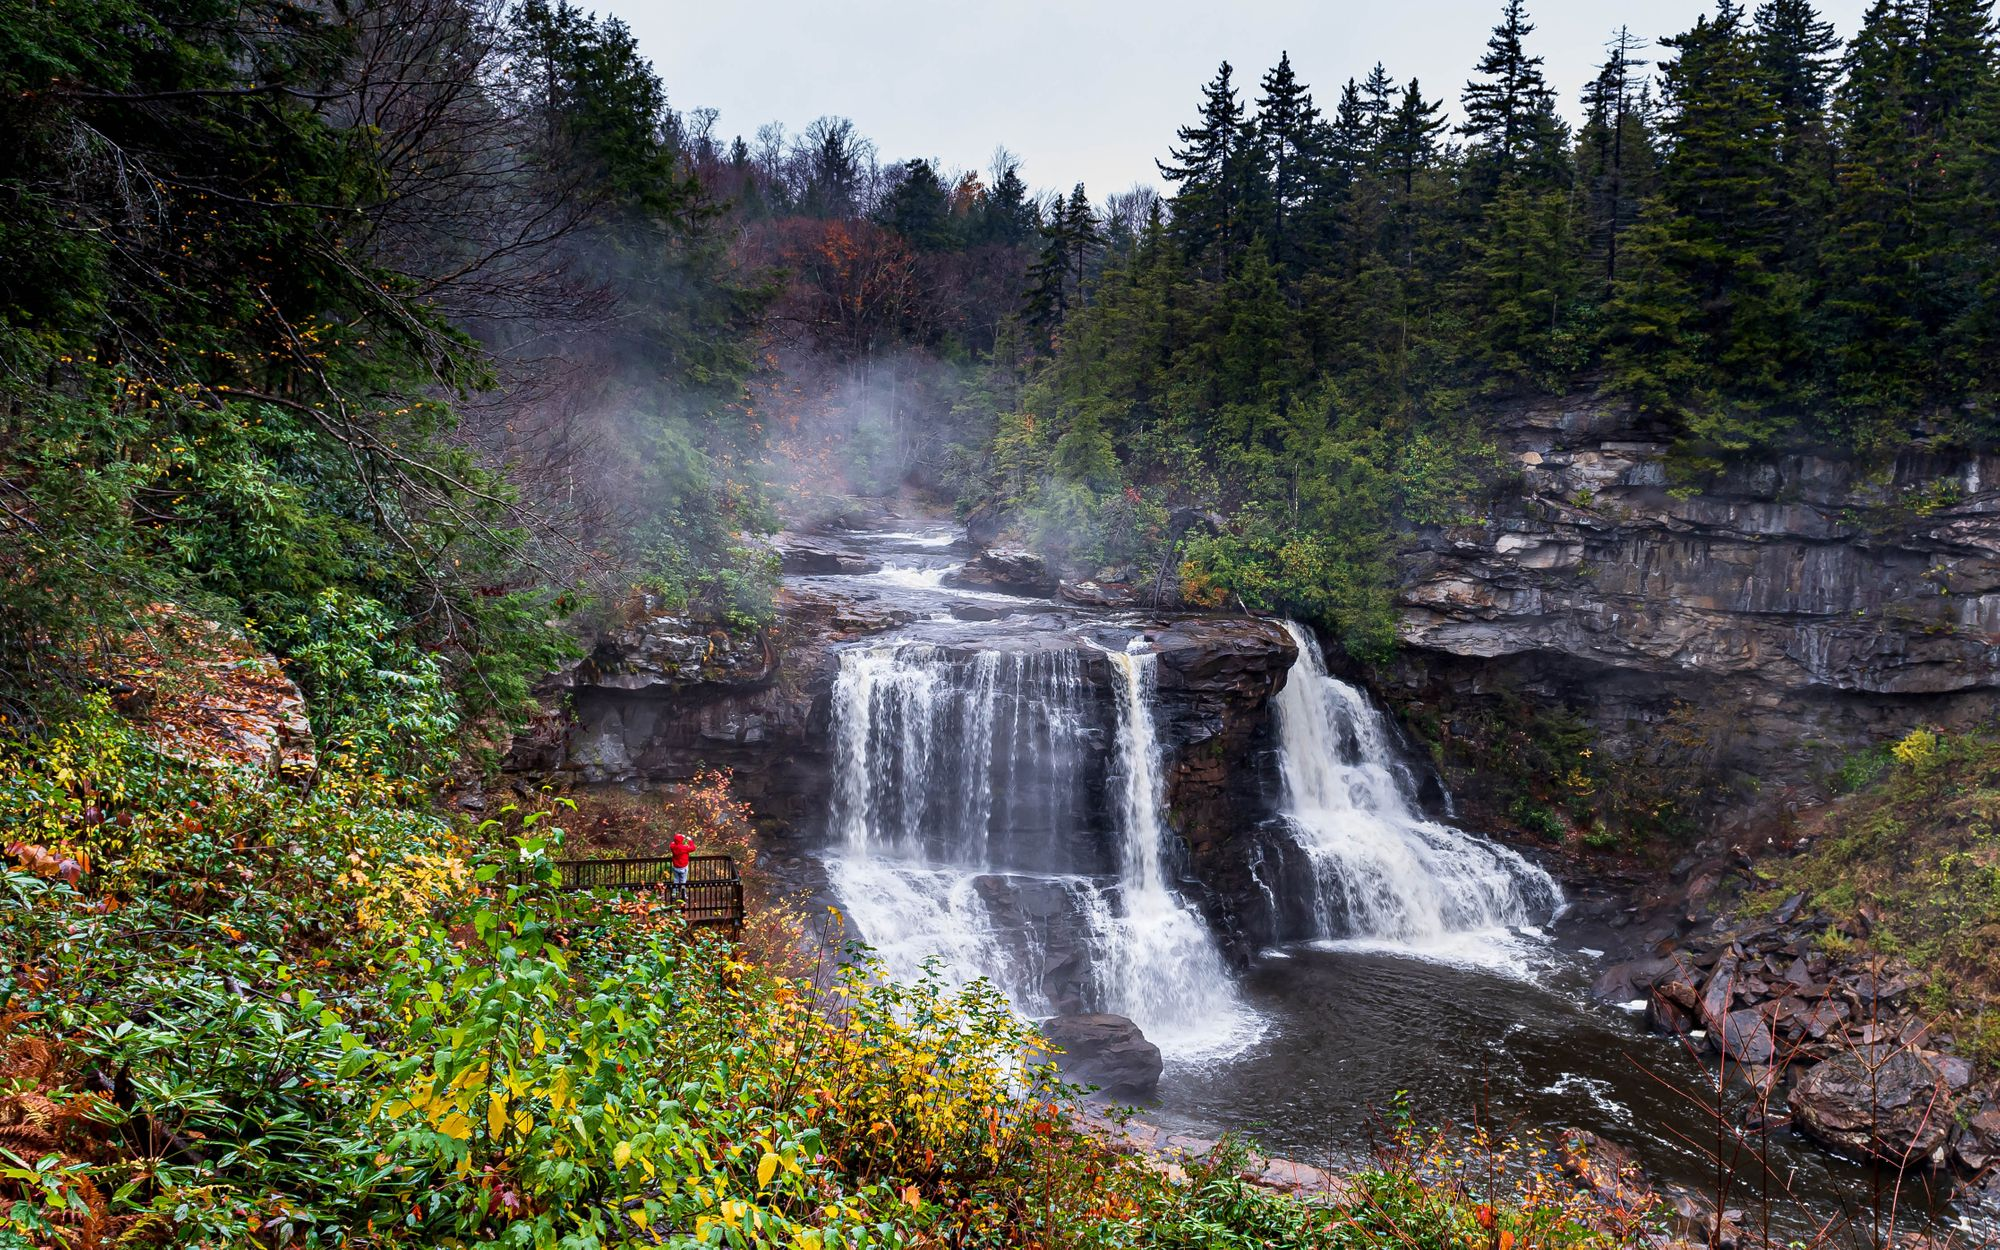 Blackwater Falls during the summertime.